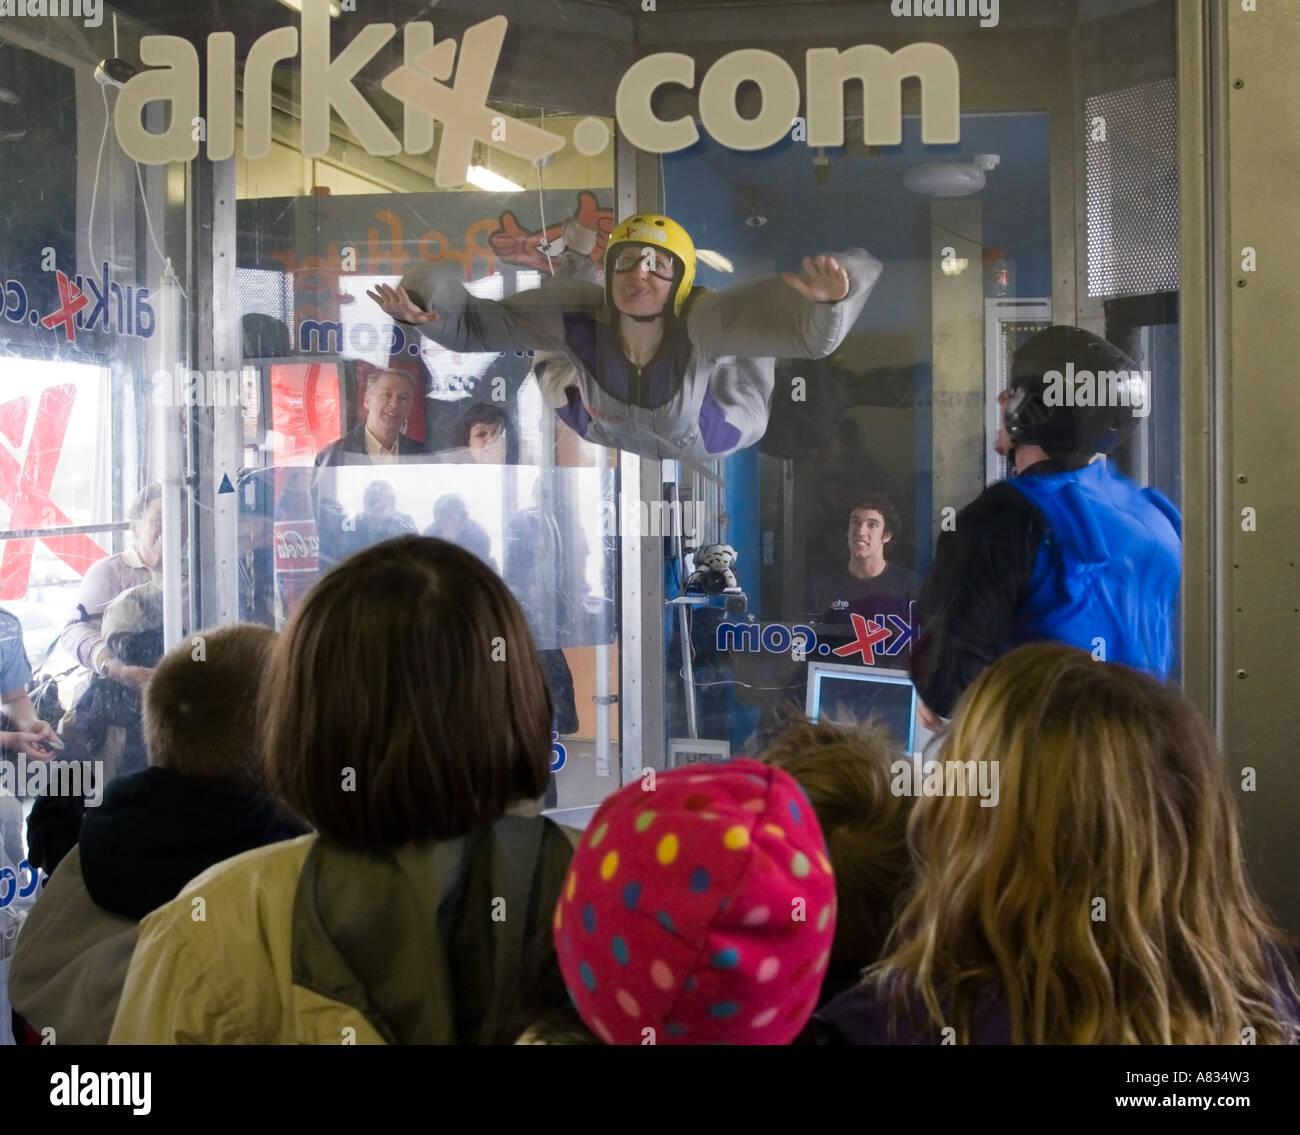 Airlix Indoor skydiving xscape milton keynes - Stock Image